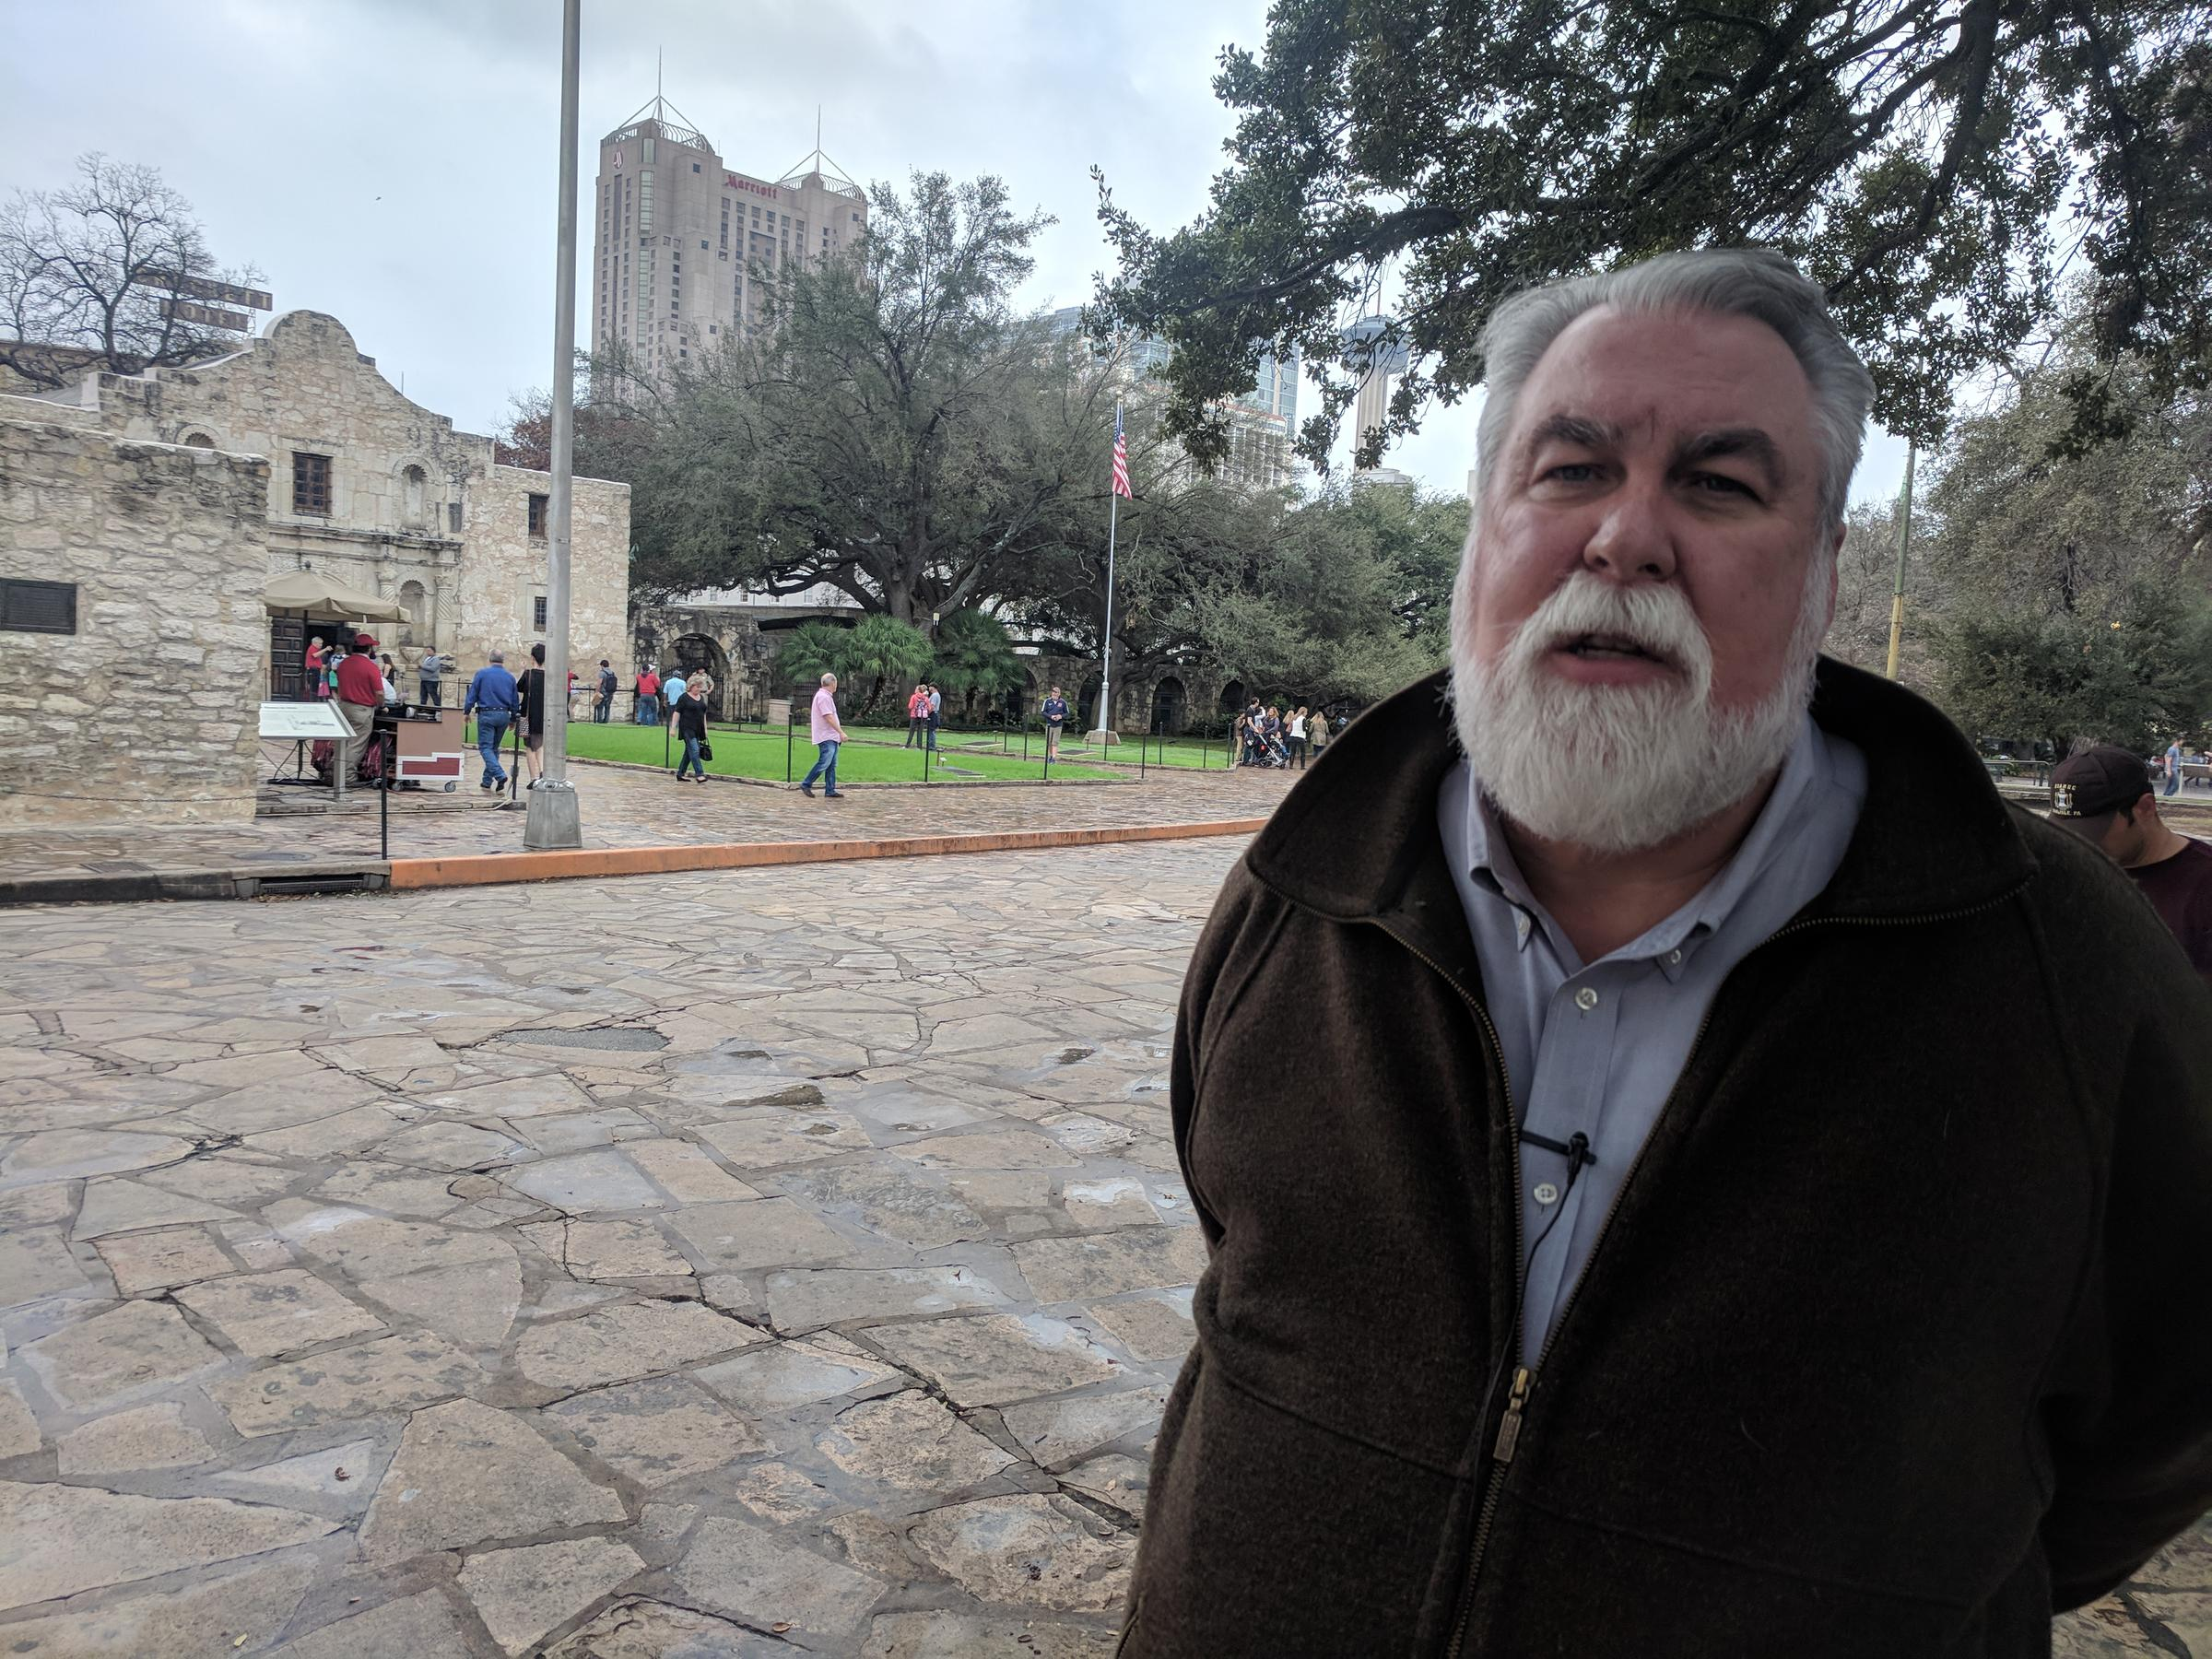 Stephen L. Hardin consulted on the creation of the Alamo Reality App. He also protested against removing the Cenotaph.